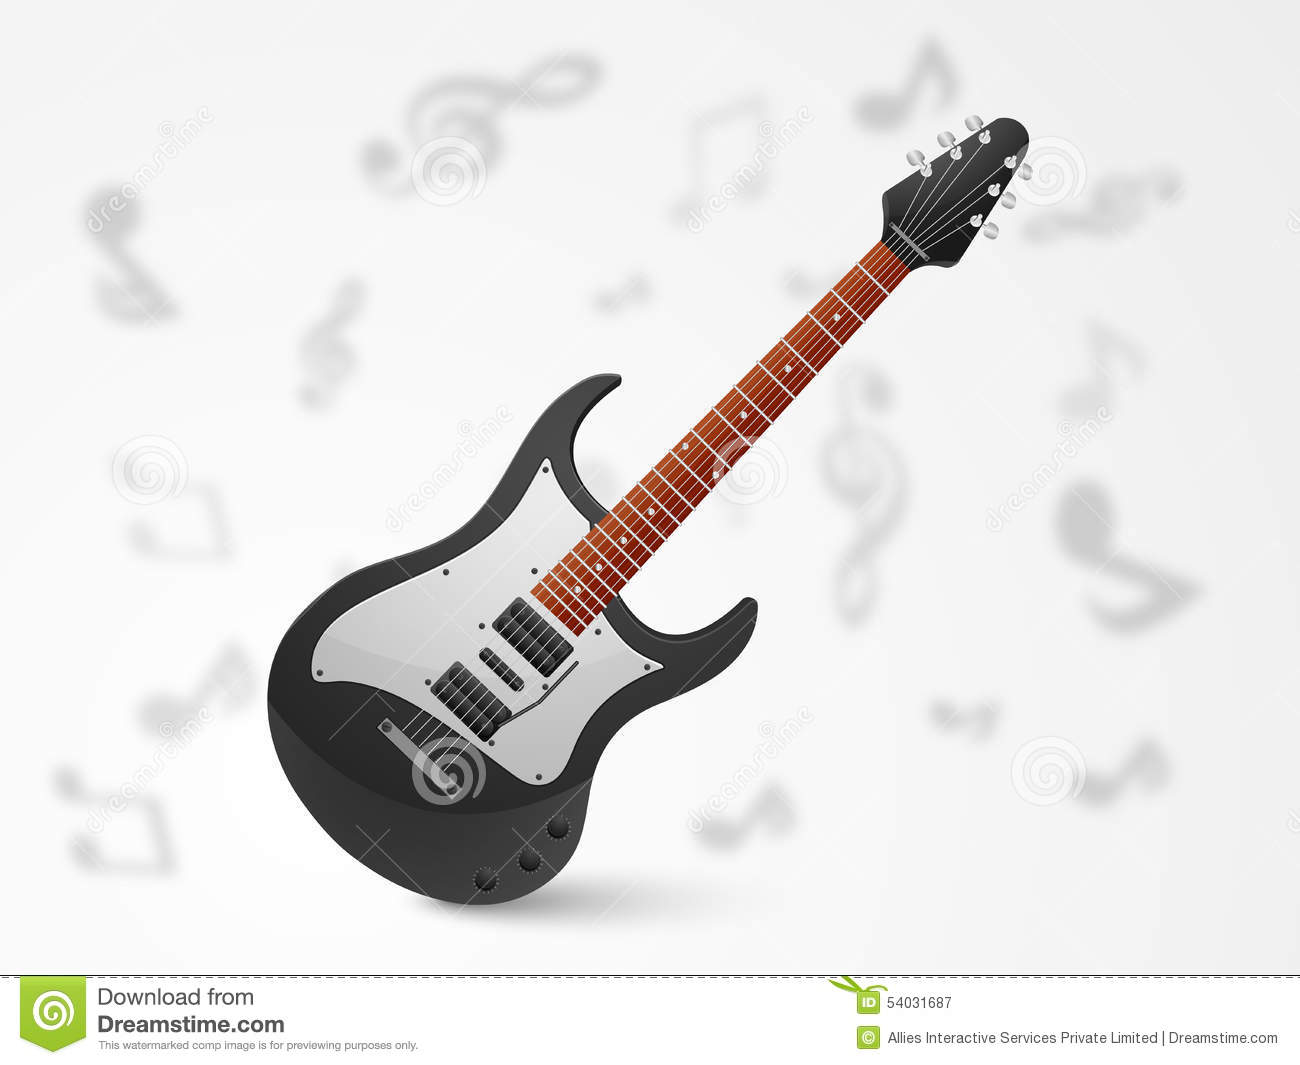 Stylish of photos guitar pictures